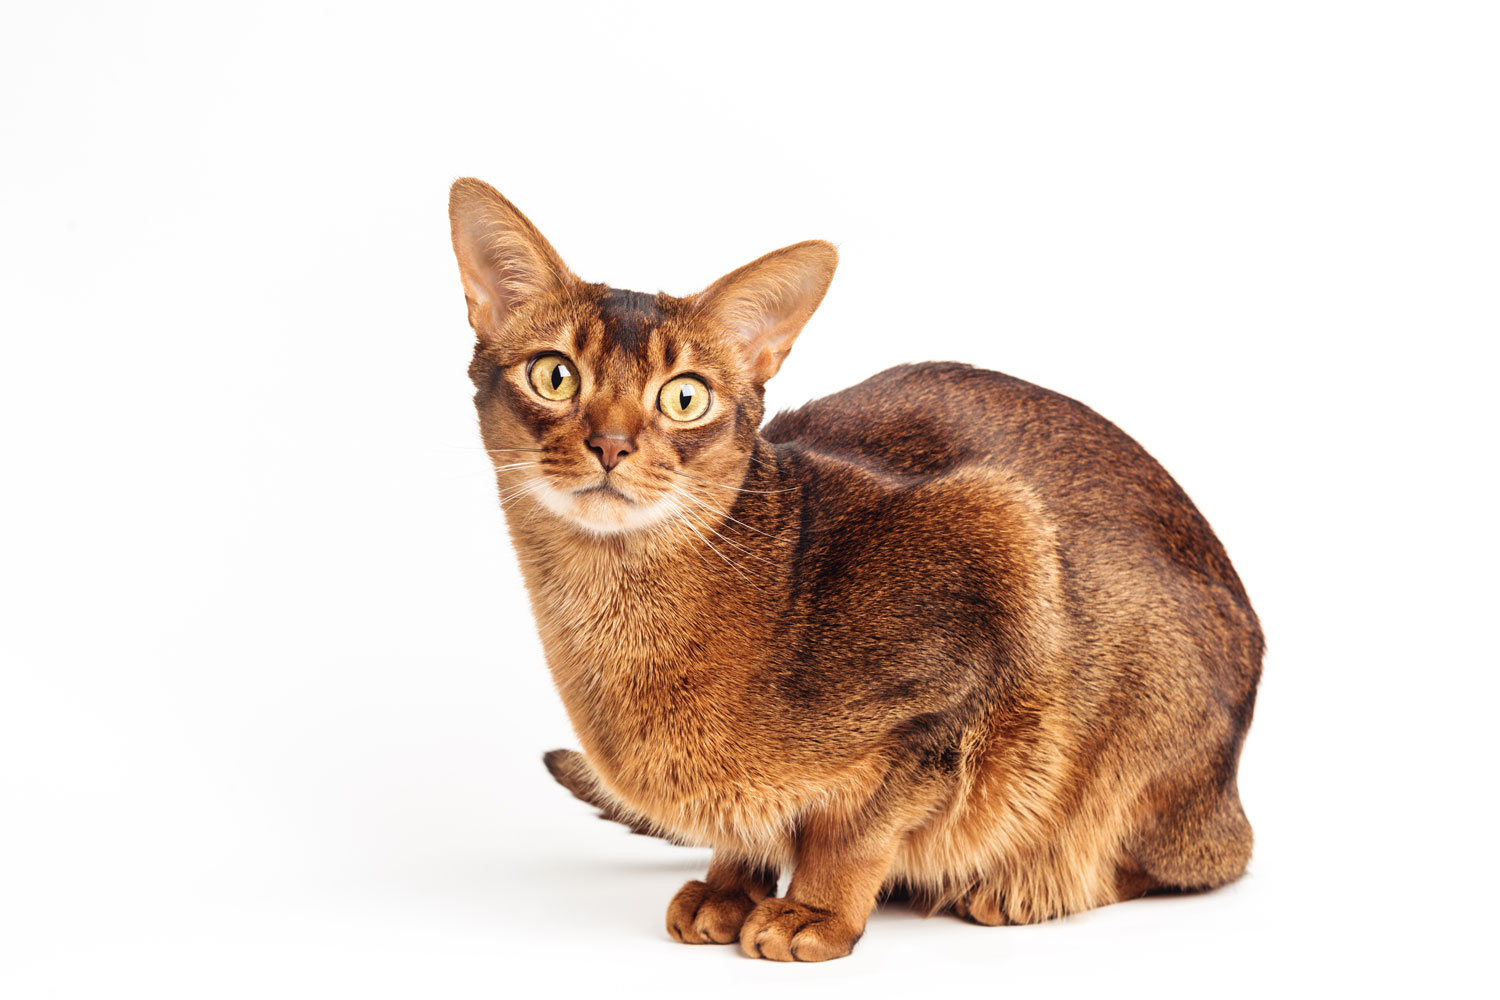 An Abyssiniian cat sitting on a white background